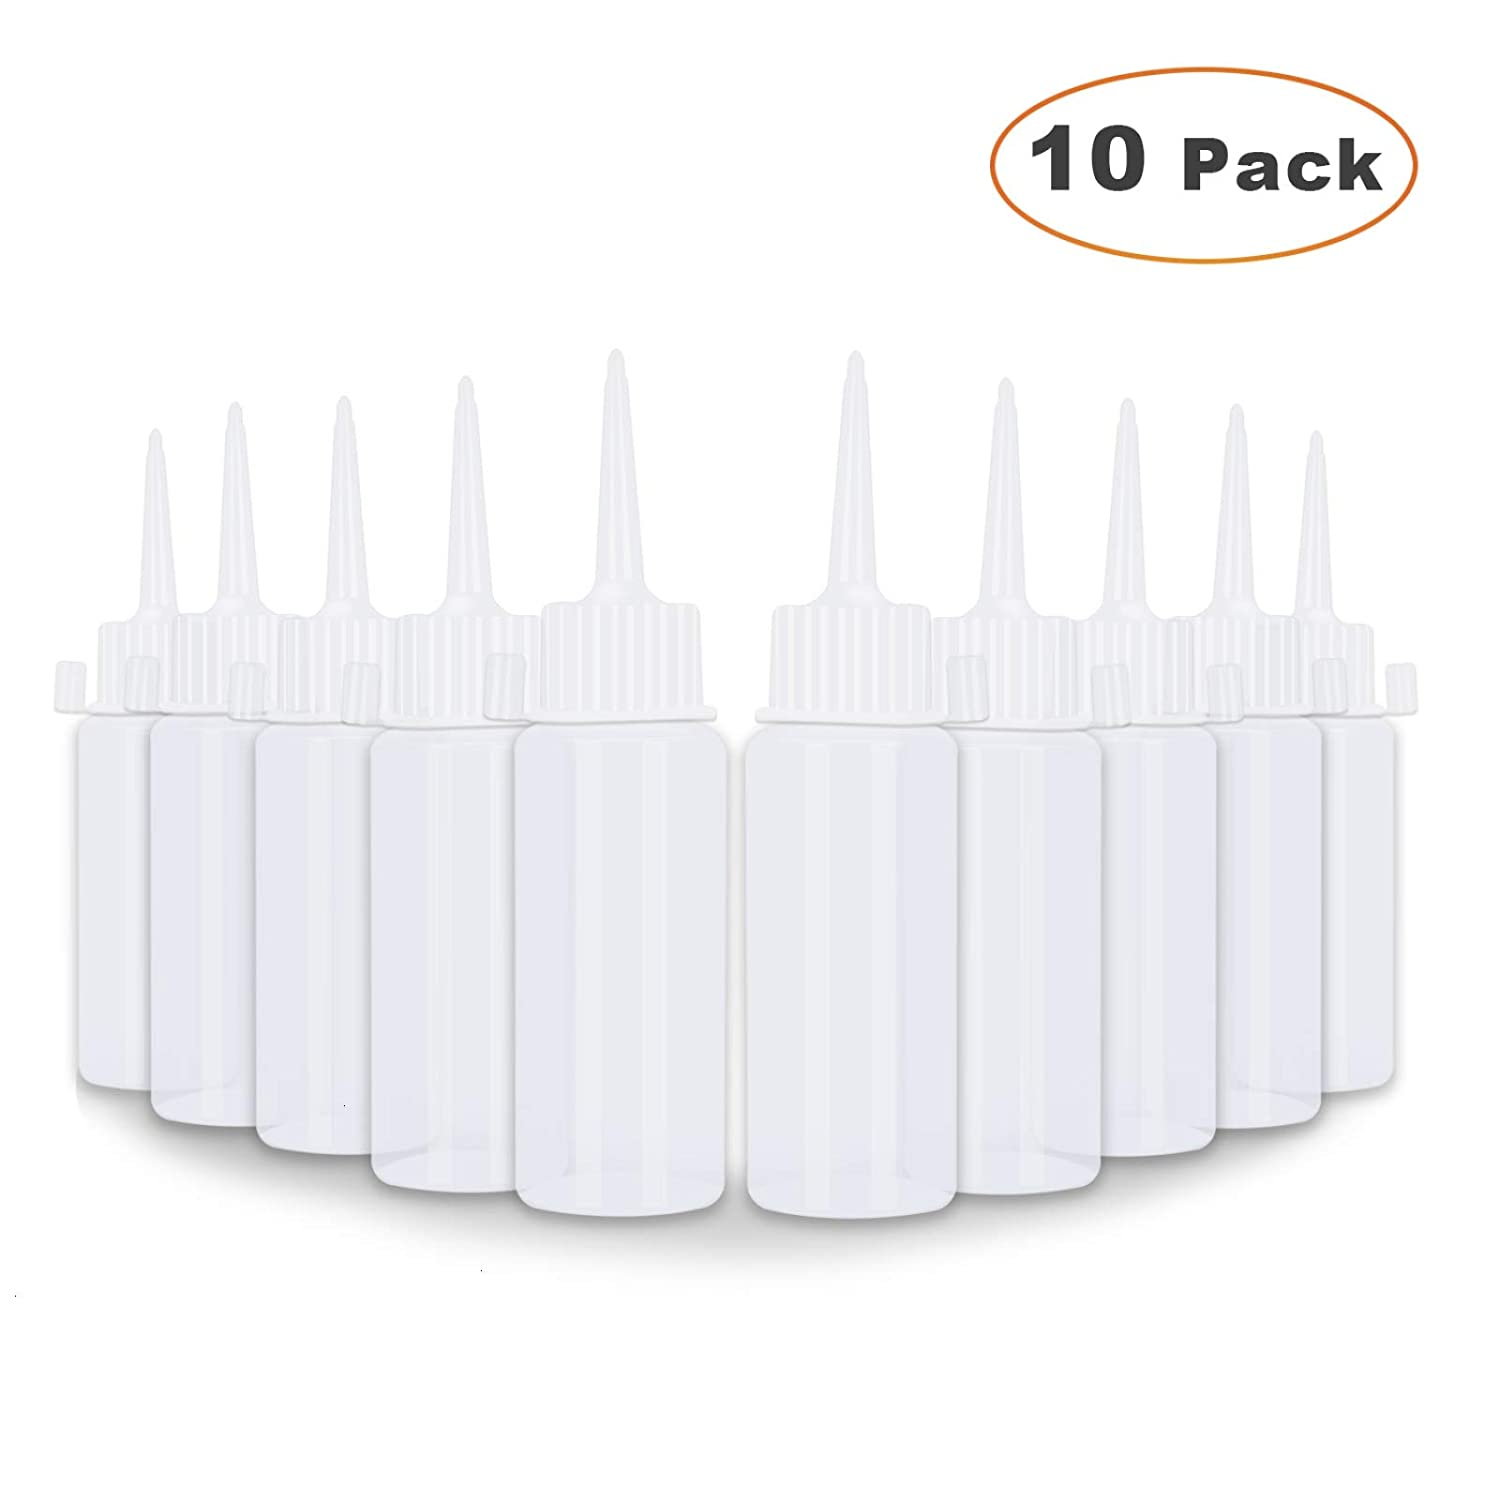 Timoo Applicator Bottle -10 Pack Empty Plastic Squeeze Bottle for Small Gluing Projects, Paper Quilling, DIY Craft Glitter Glue, Art Paint, Crafts Projects, Jewelry Making